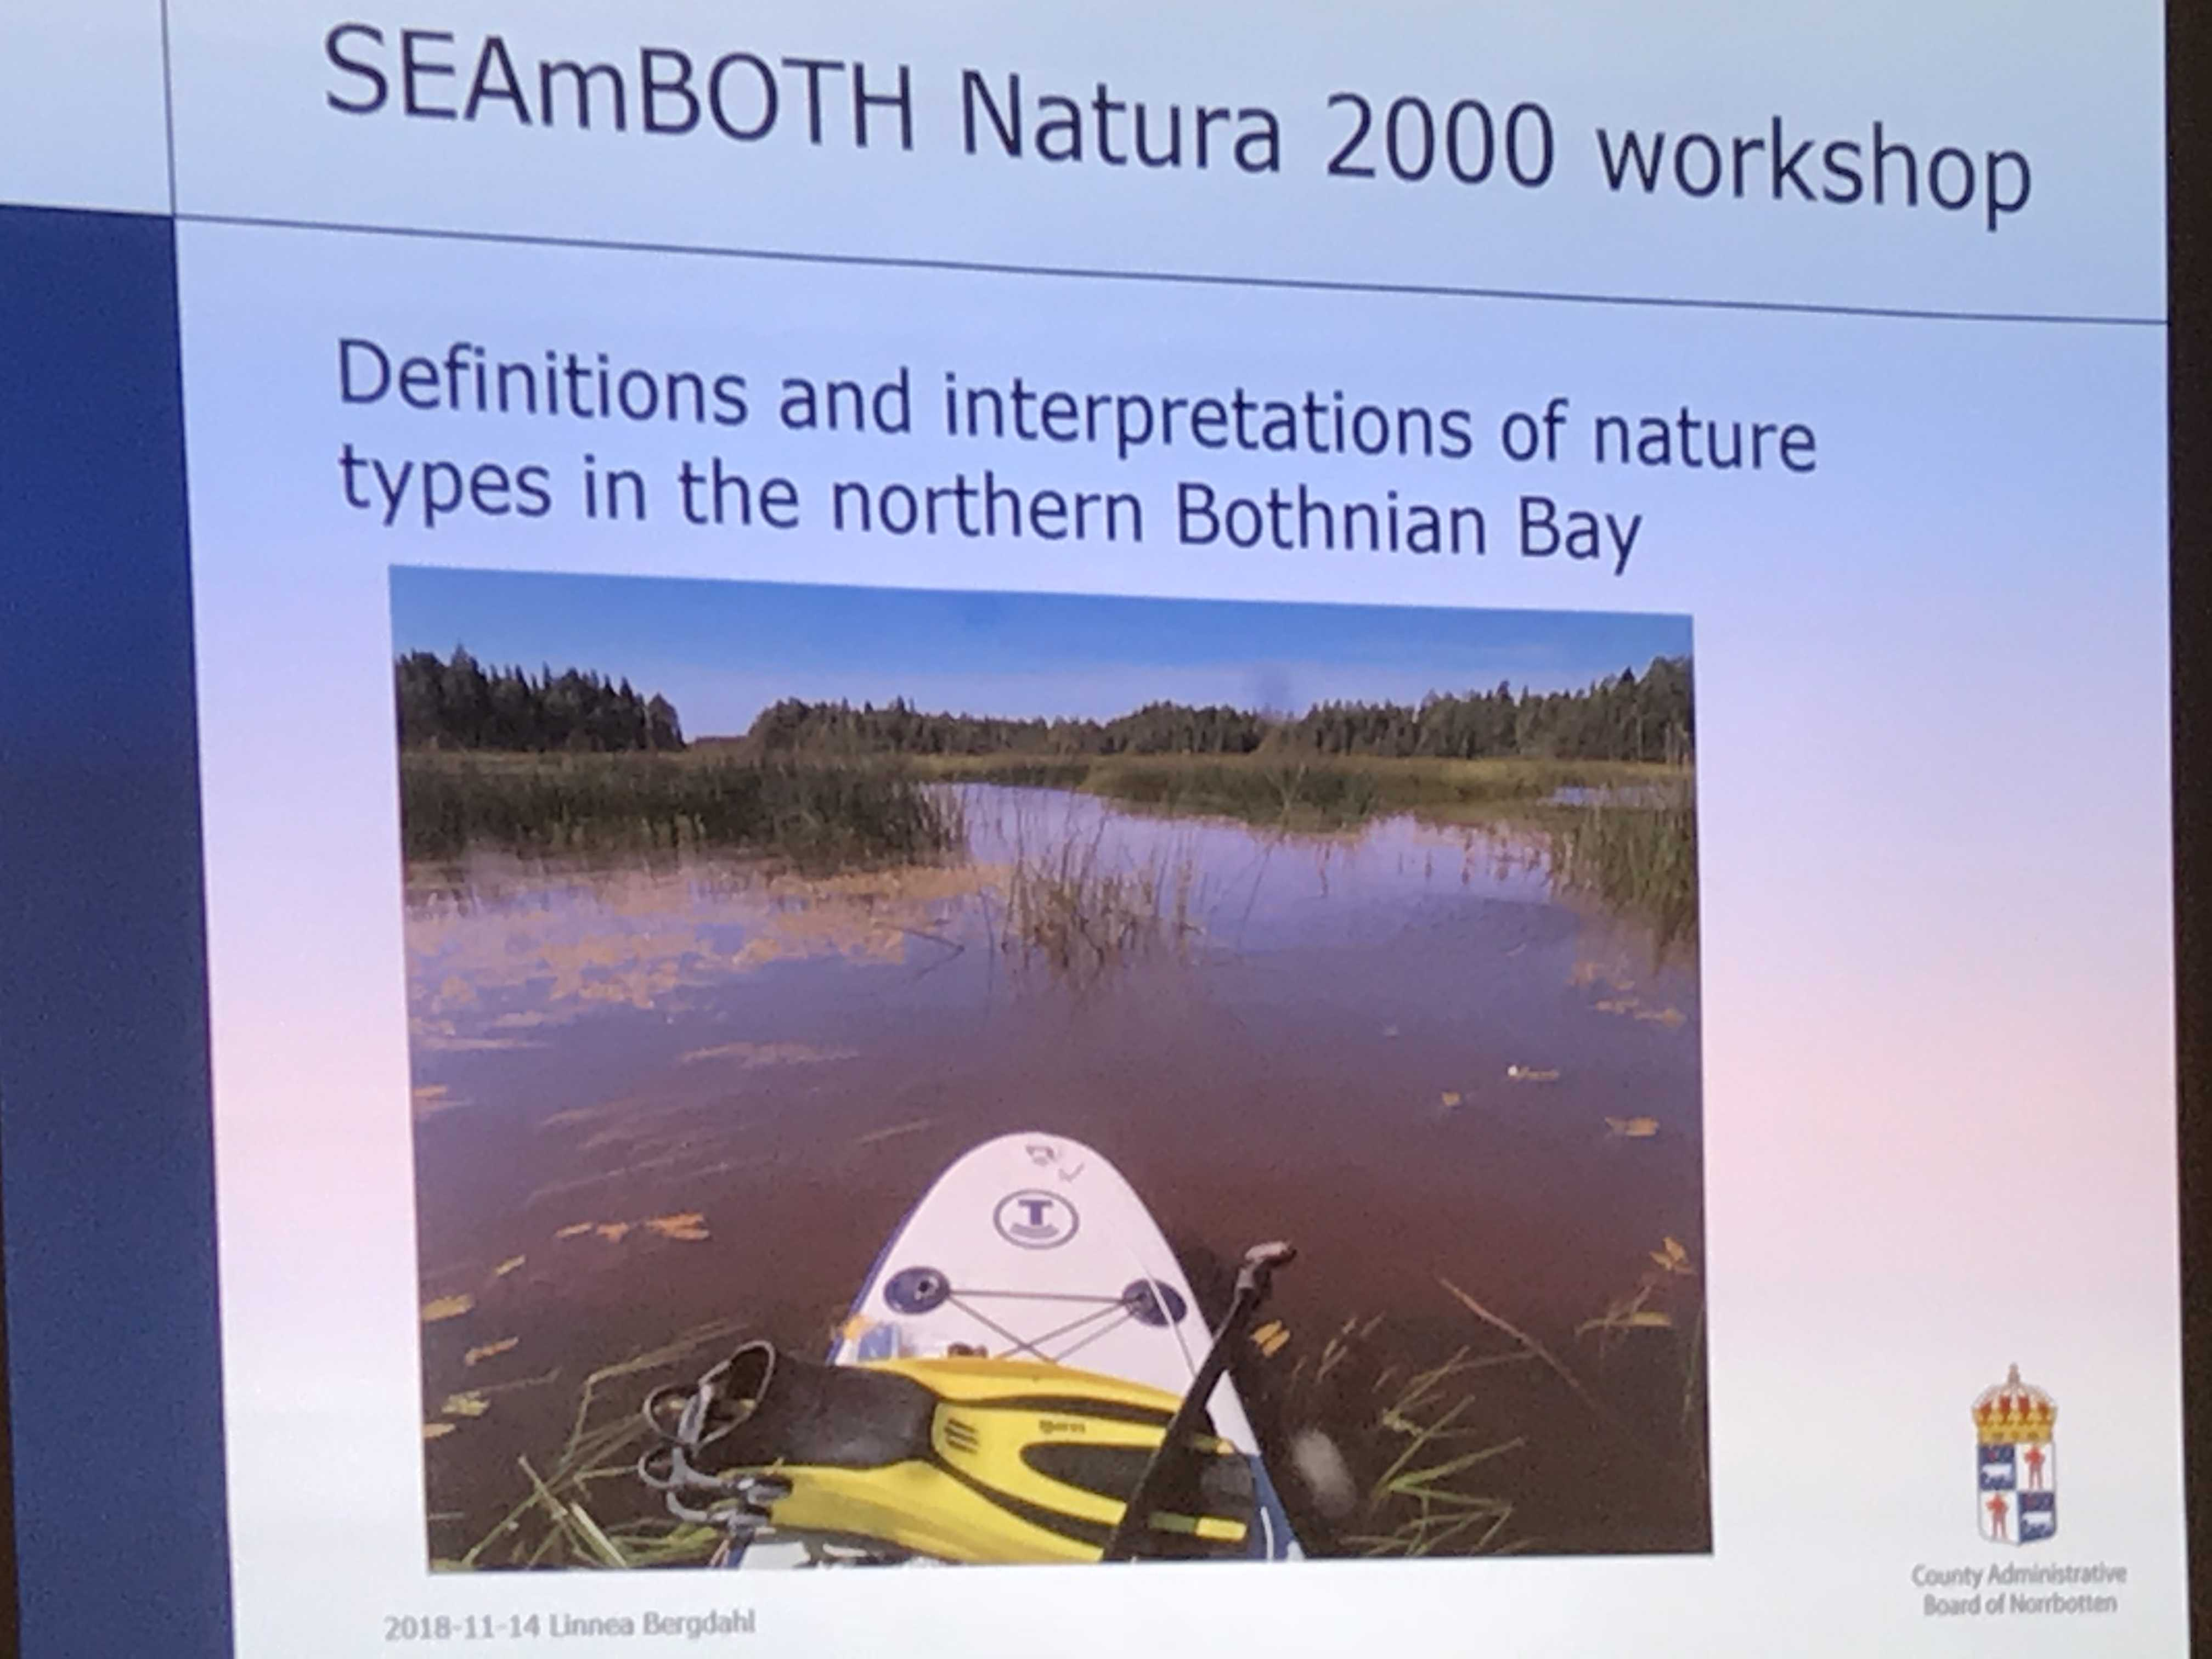 SEAmBOTH Natura 2000 workshop. Definitions and interpretations of nature types in the northern Bothnian Bay. A presentation slide.